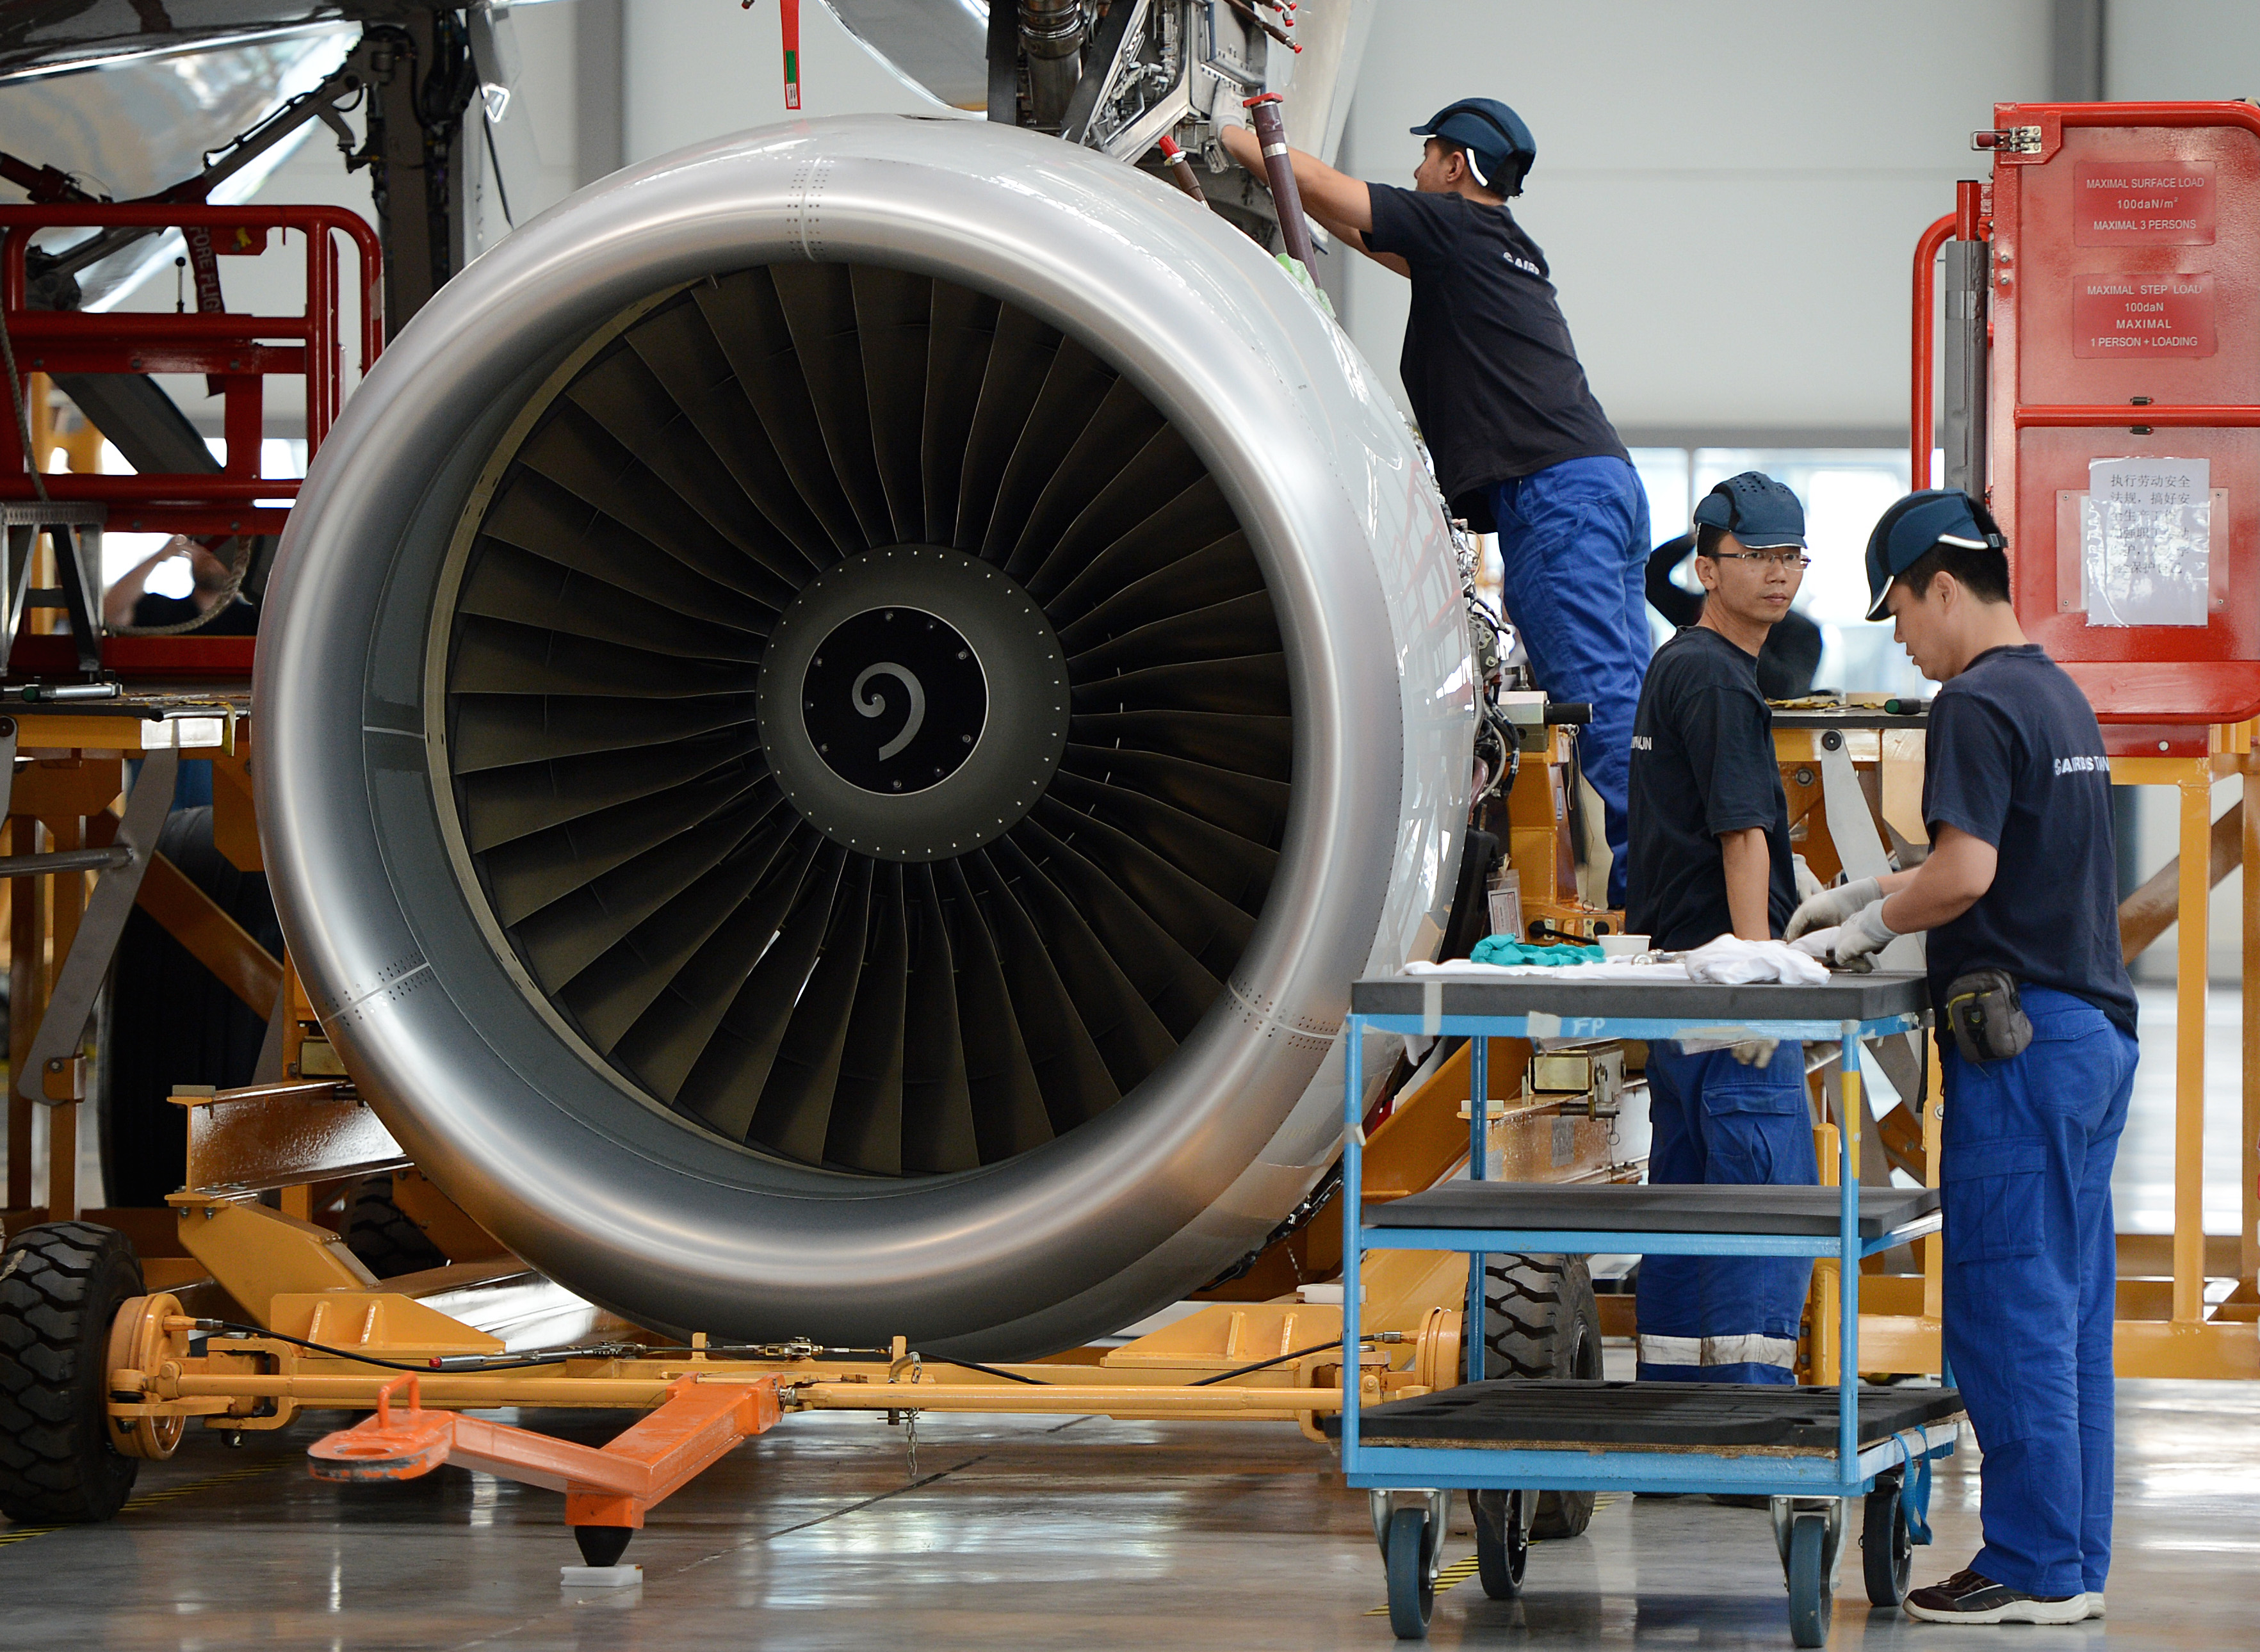 Airbus employees install an engine on an A320 plane under construction at the final assembly line of Airbus factory in the northern port city of Tianjin on June 13, 2012.  Tony Tyler who is the head of airline industry group IATA urged the European Union to postpone its controversial carbon tax scheme, amid warnings it could spark a trade war that would penalise Europe. China's aviation watchdog forbade Chinese airlines from participating in the so-called Emissions Trading Scheme (ETS).      AFP PHOTO/Mark RALSTON        (Photo credit should read MARK RALSTON/AFP/GettyImages)